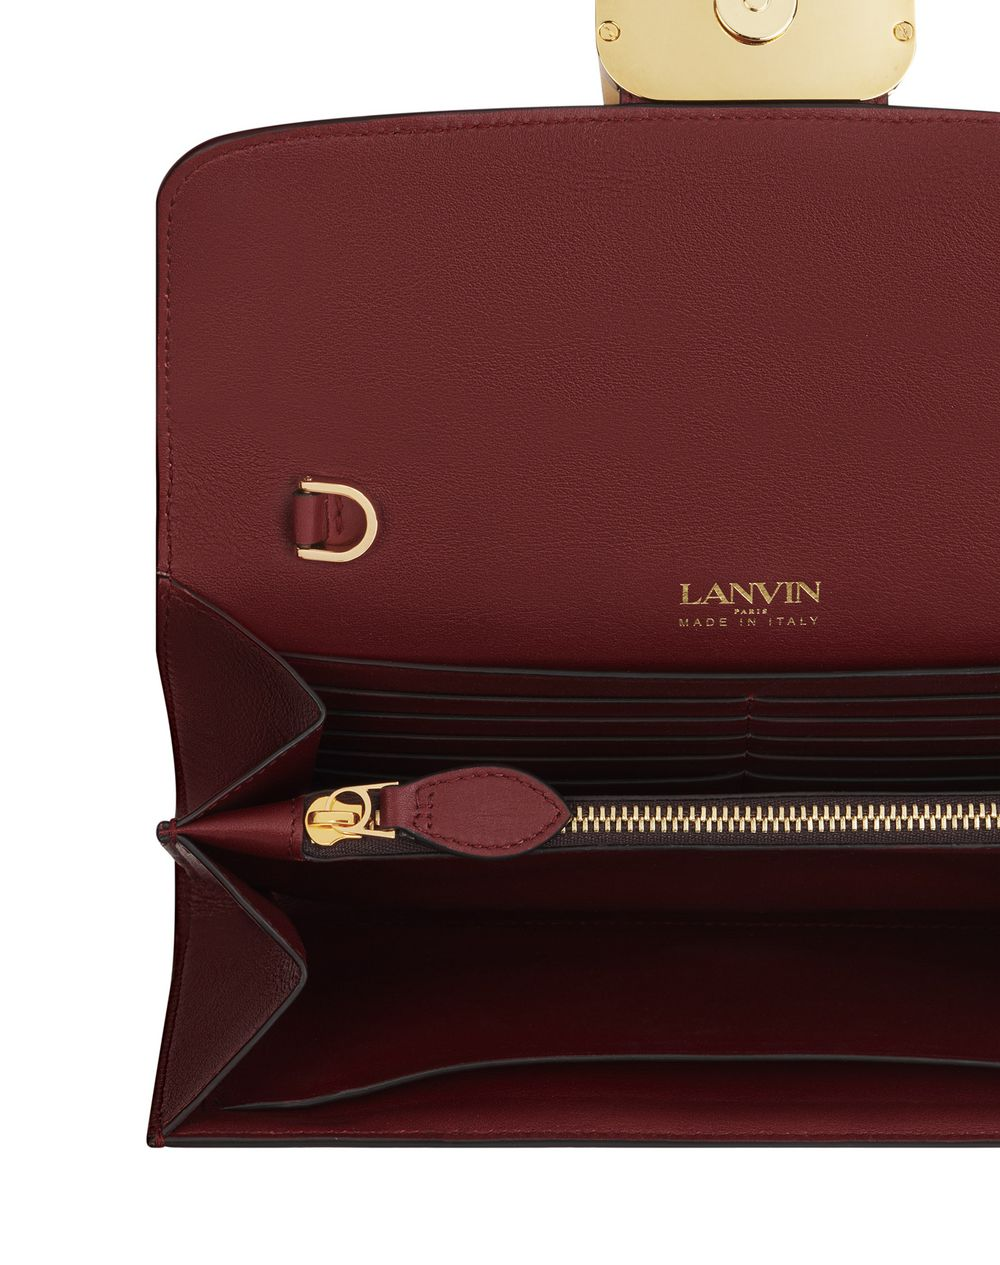 SWAN CHAIN CLUTCH  - Lanvin